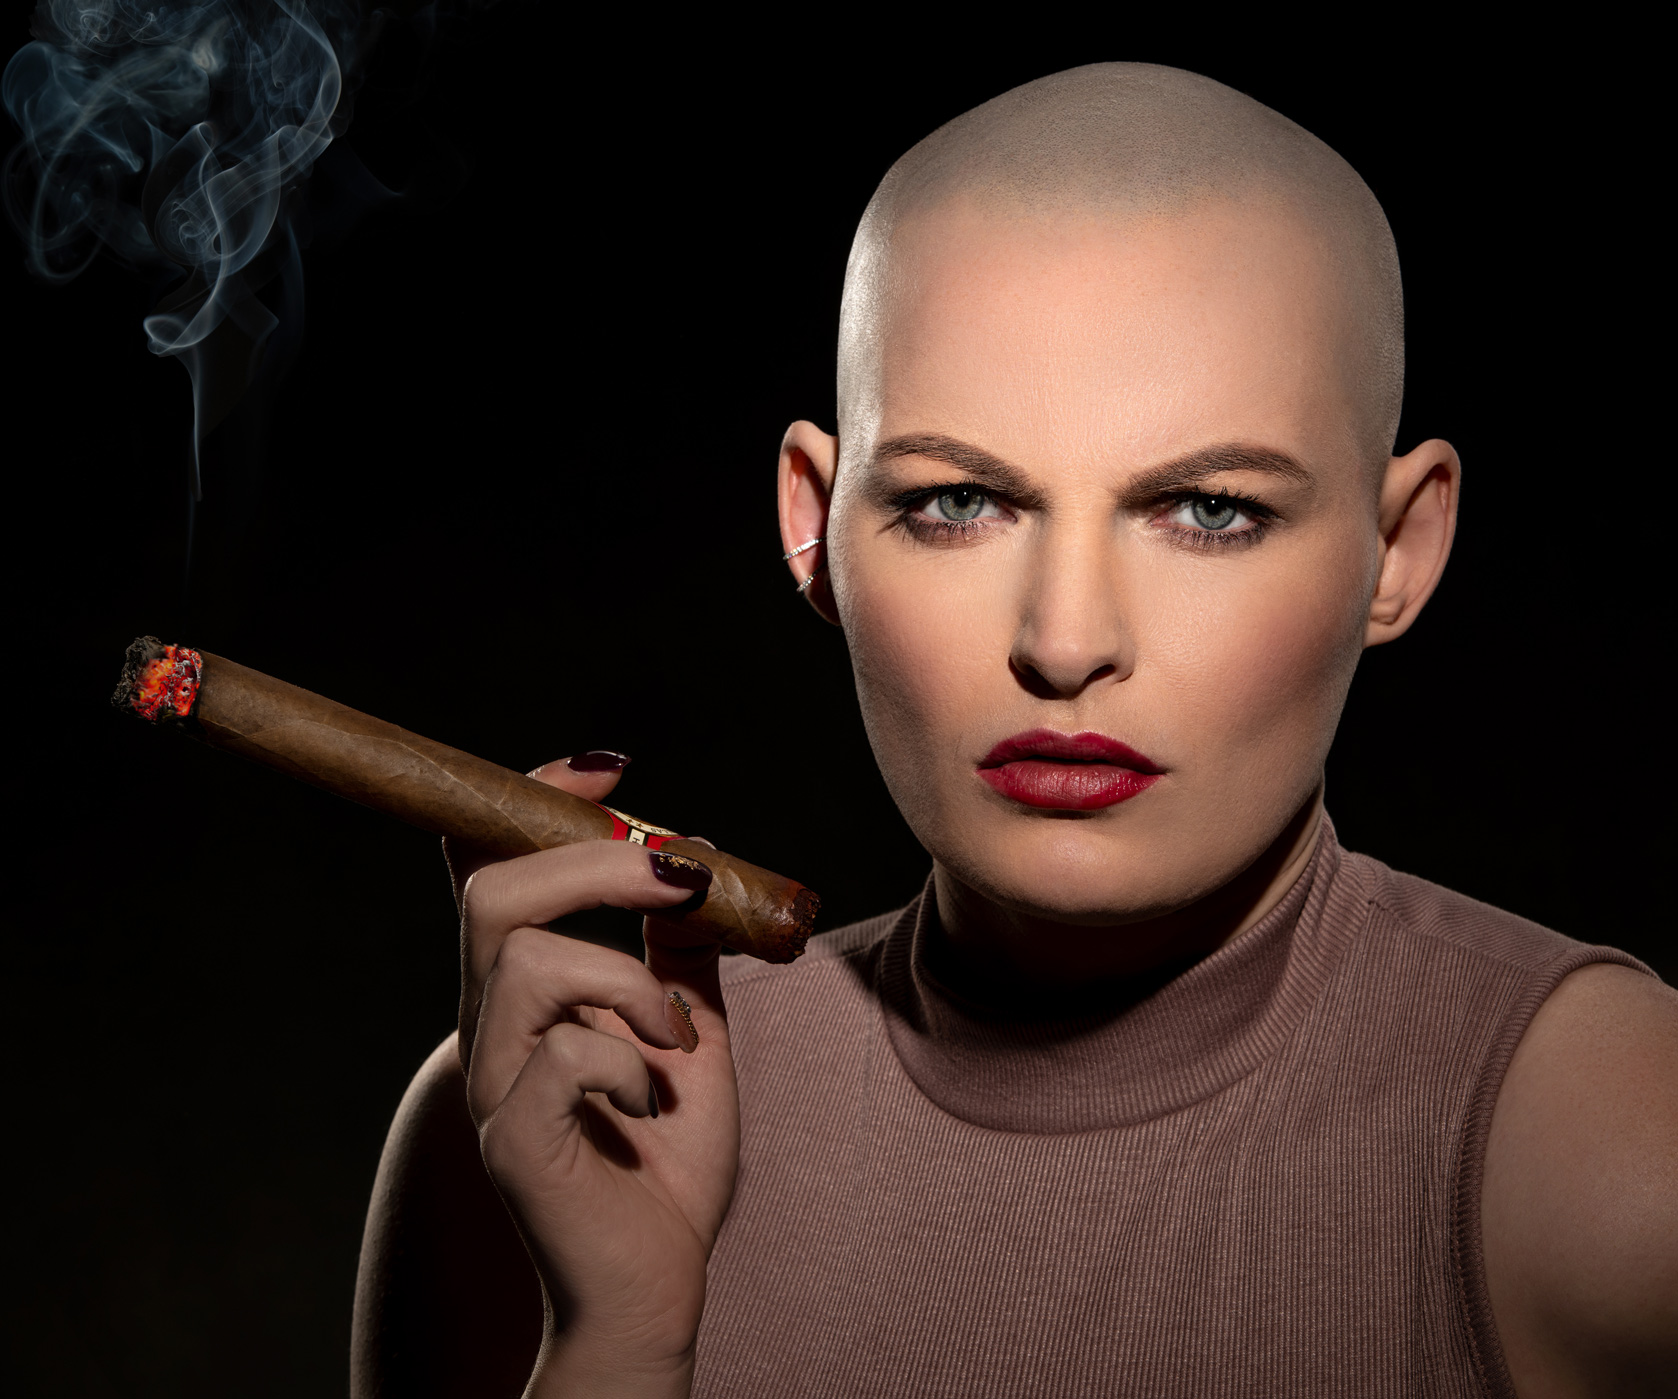 professional headshot of bald female model with cigar